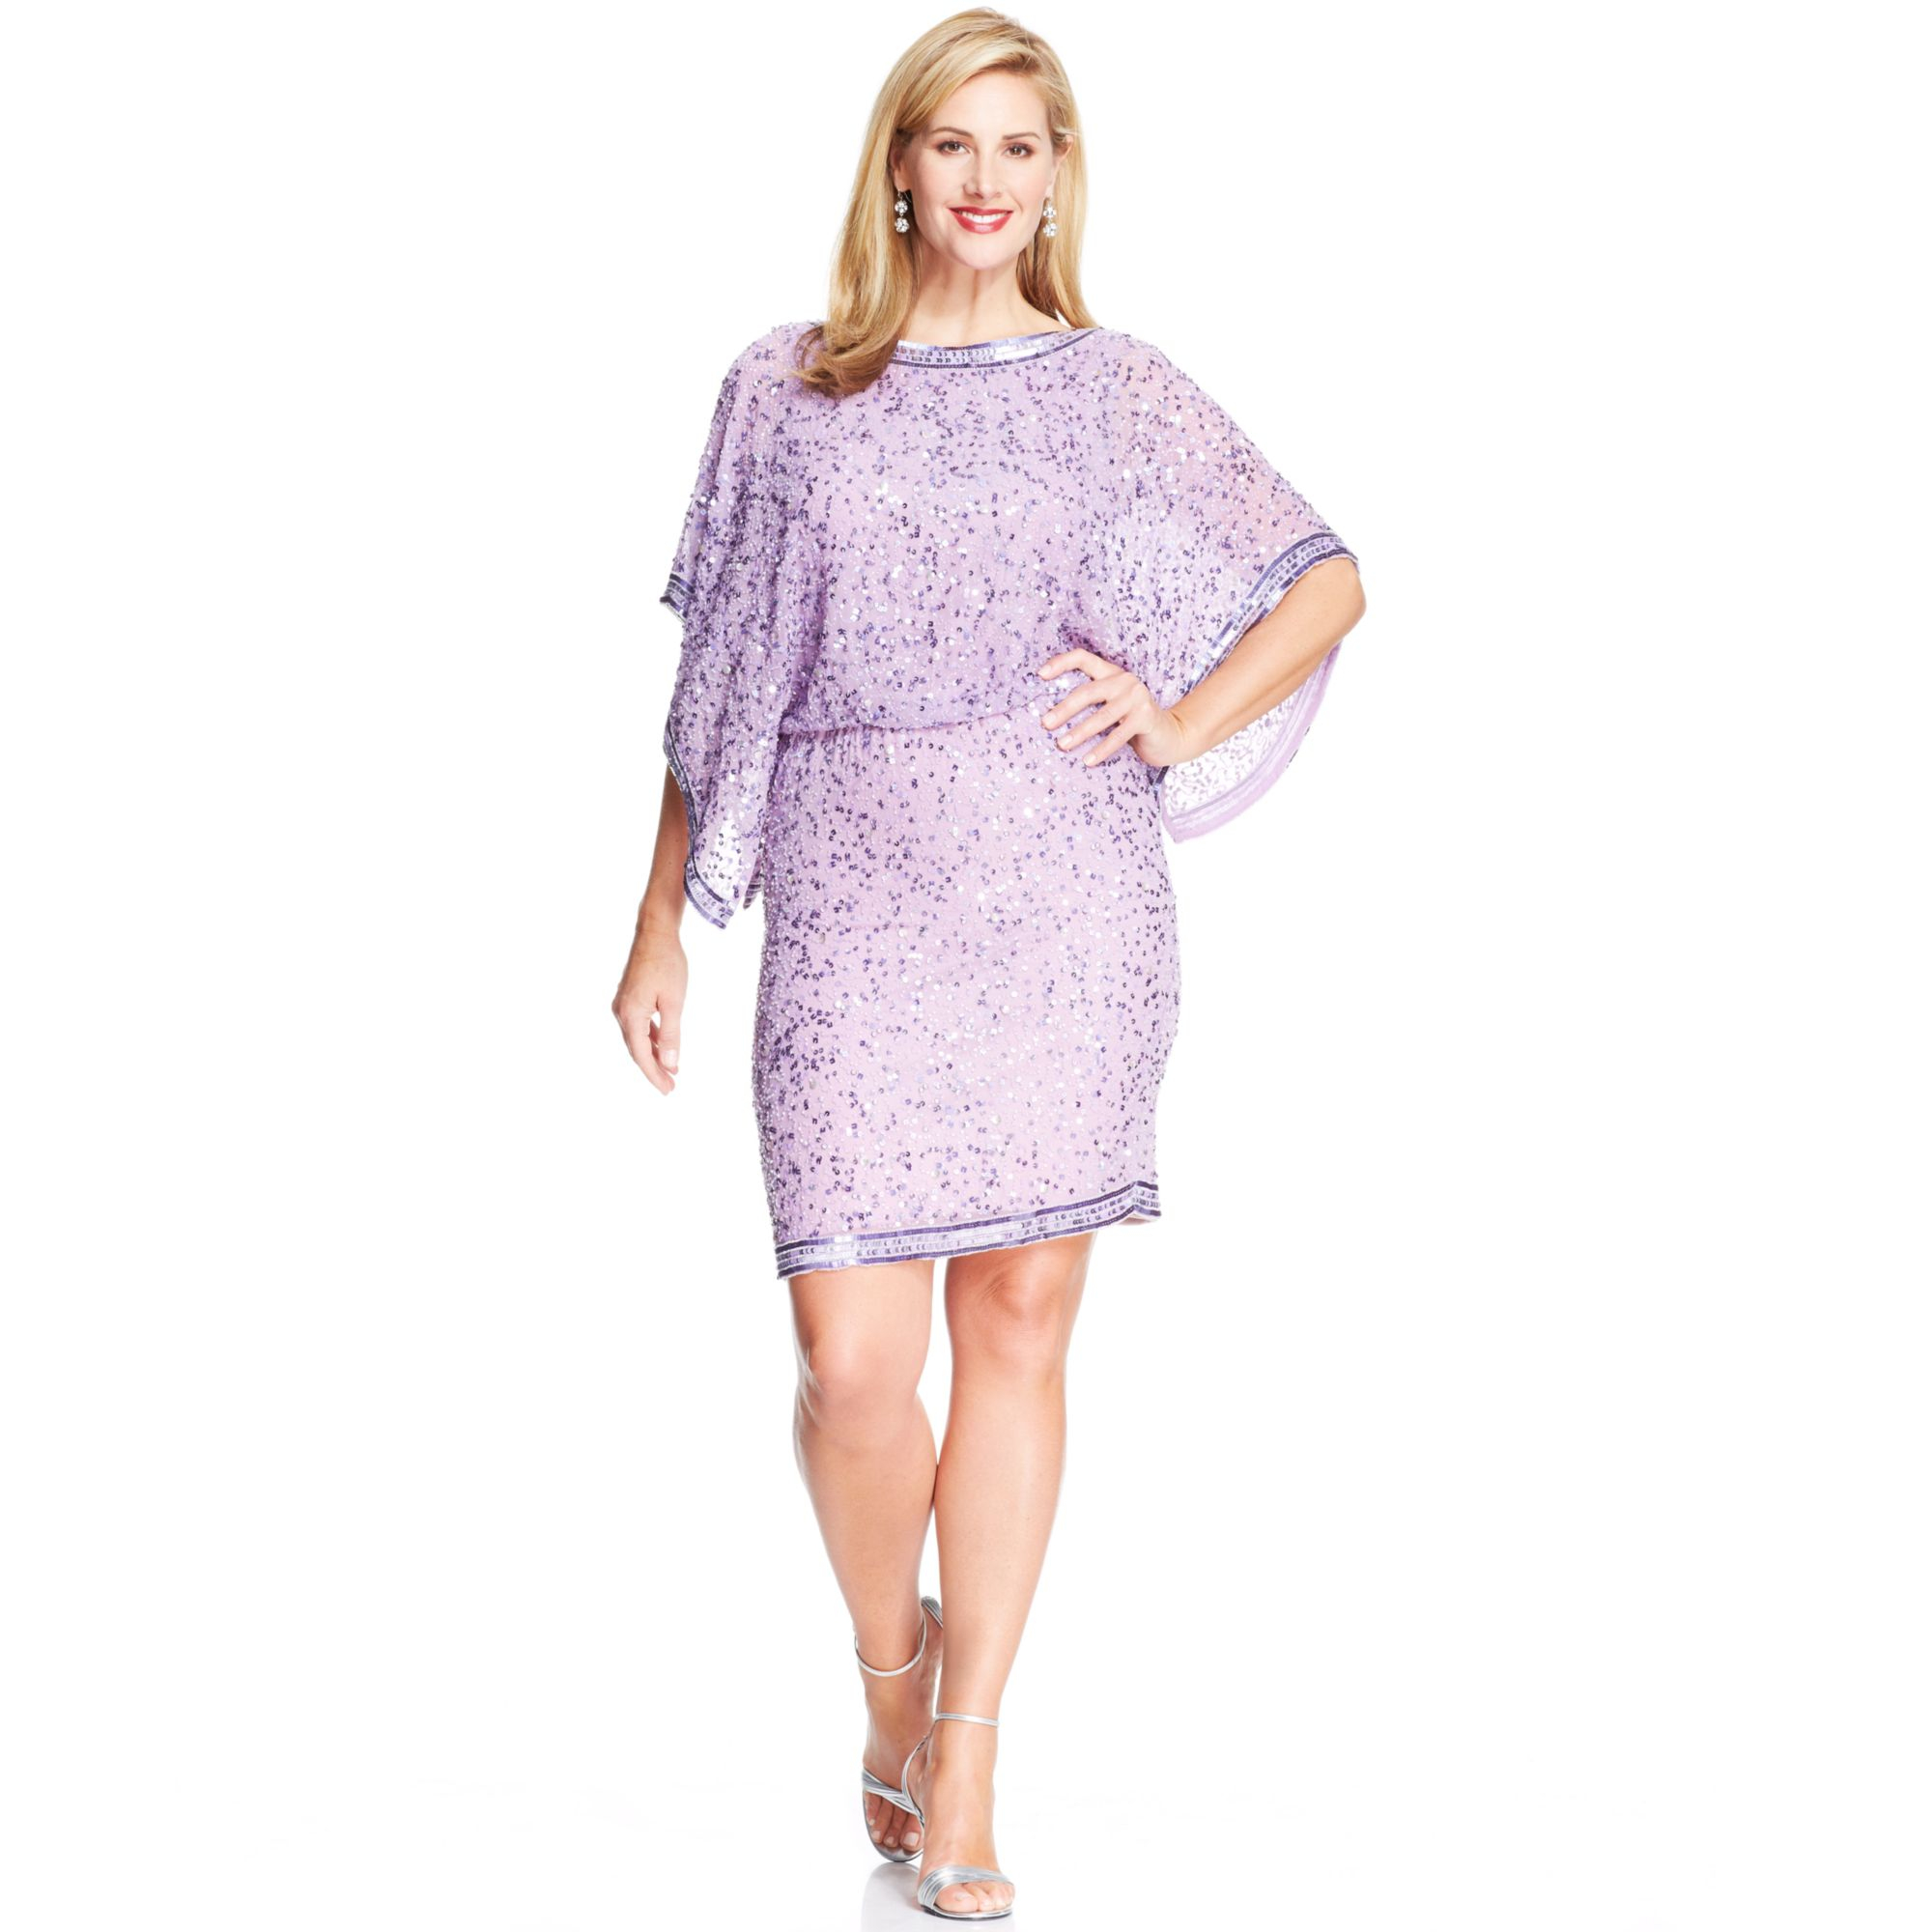 Plus Size Patra Dresses - Holiday Dresses